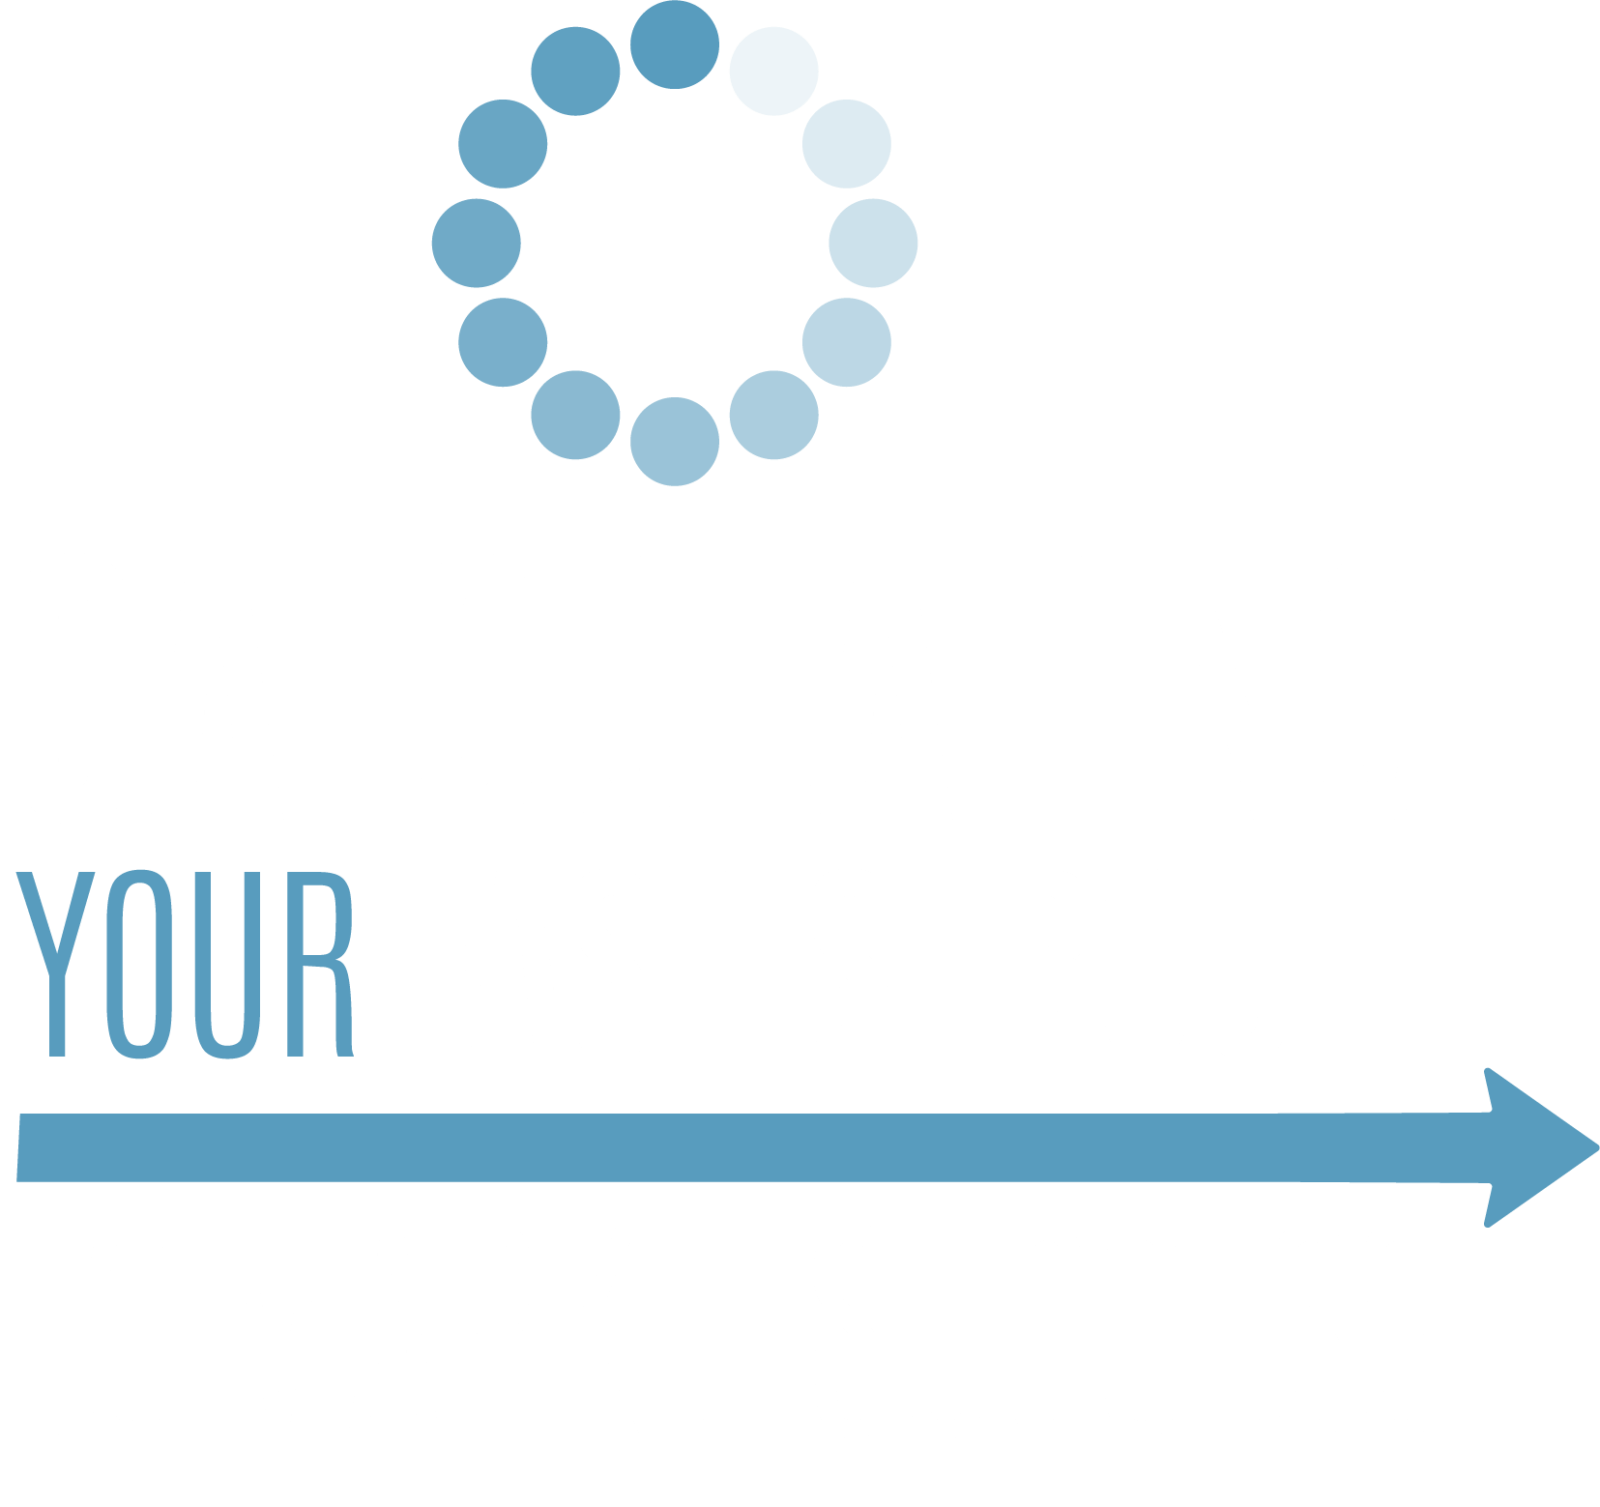 Calculating your fastest route to market success